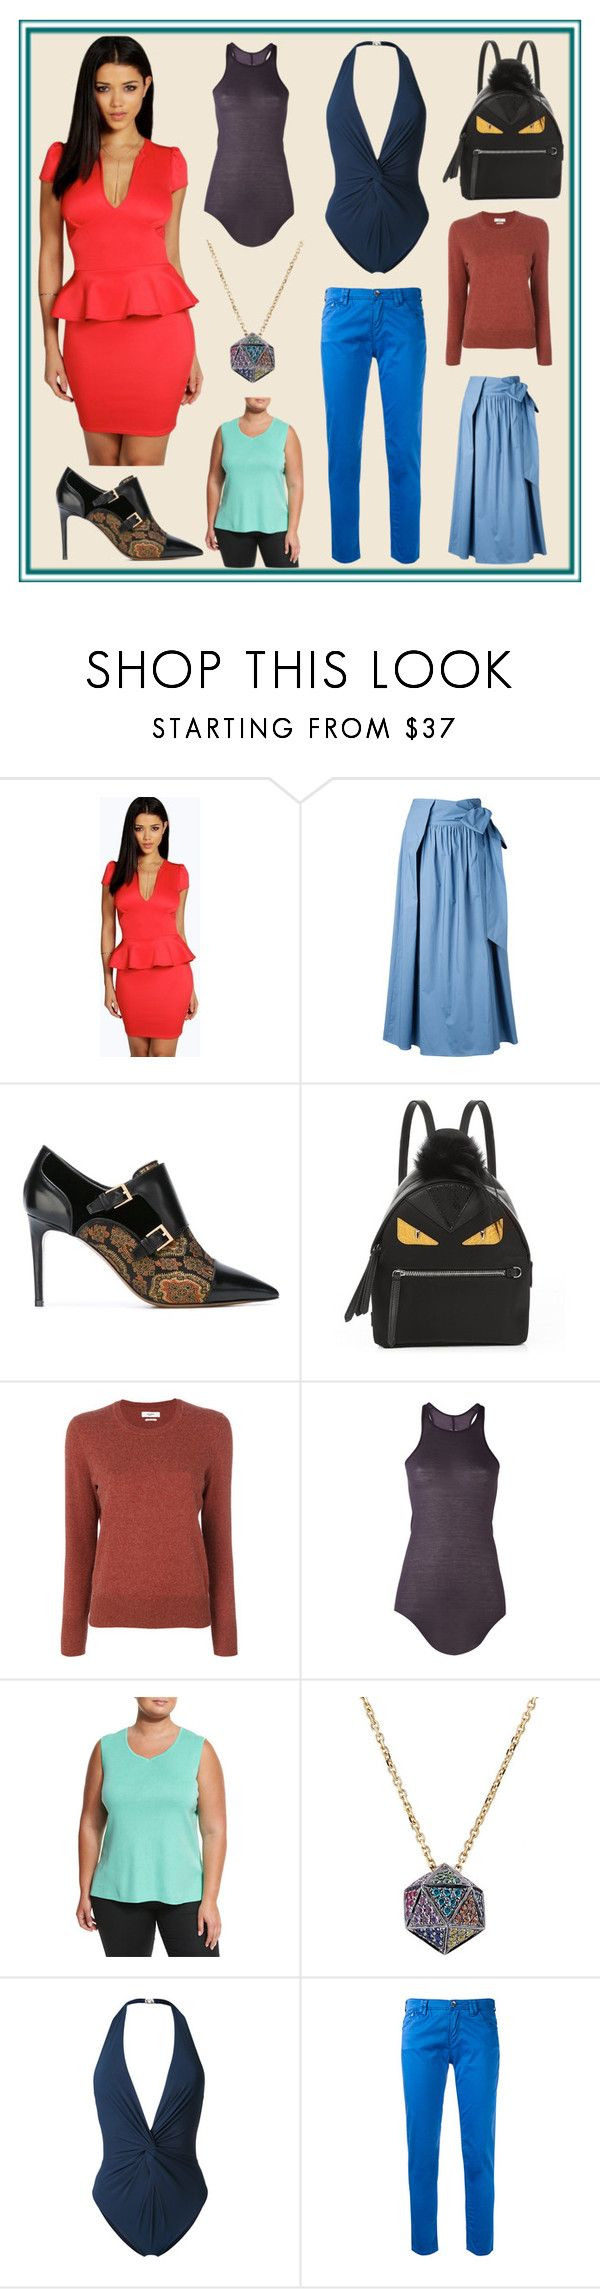 """""""Day of fashion show"""" by cate-jennifer ❤ liked on Polyvore featuring Boohoo, H Beauty&Youth, Etro, Fendi, Rick Owens, Ming Wang, Noor Fares, Fleur of England and Armani Jeans"""